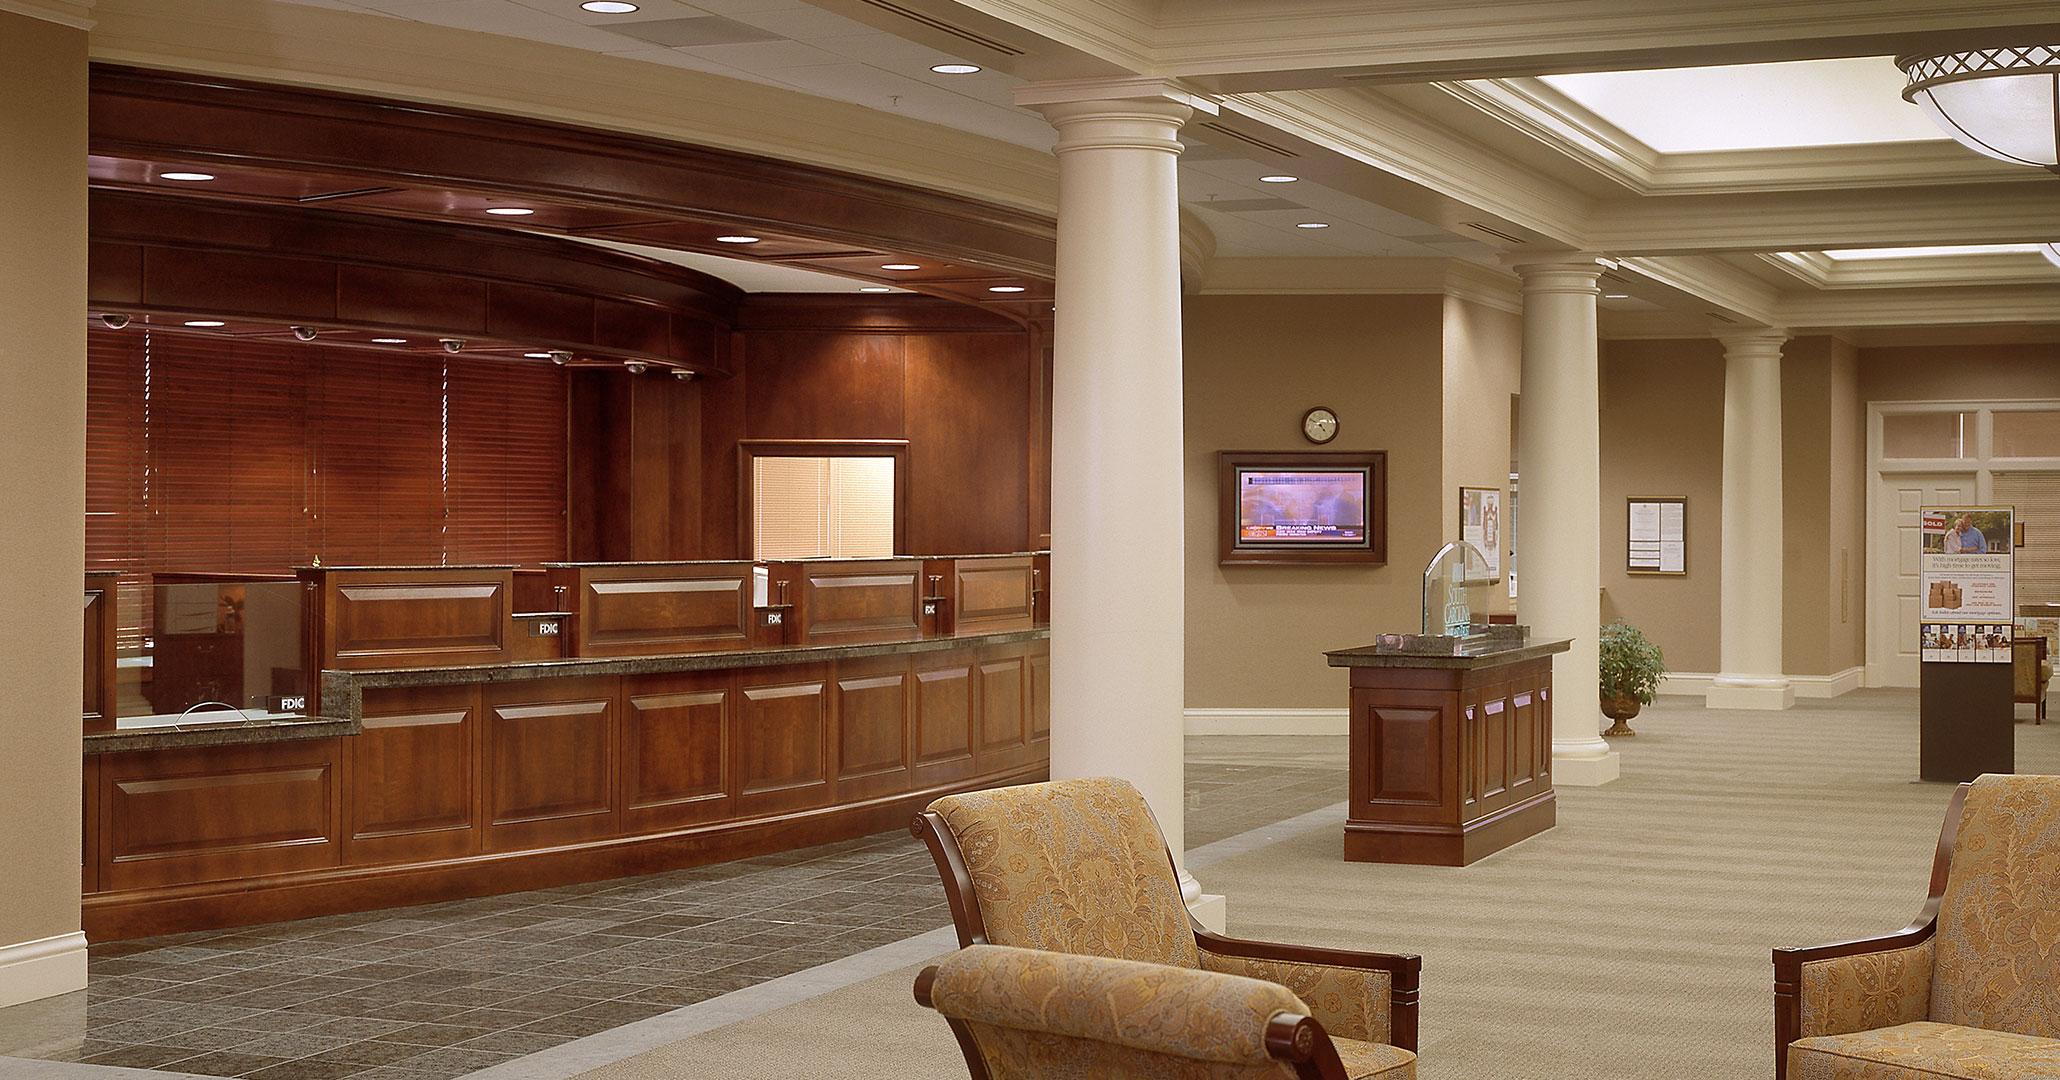 Boudreaux architects worked with South State Bank providing interior design services for their office spaces on Gervais Street in Columbia, SC.